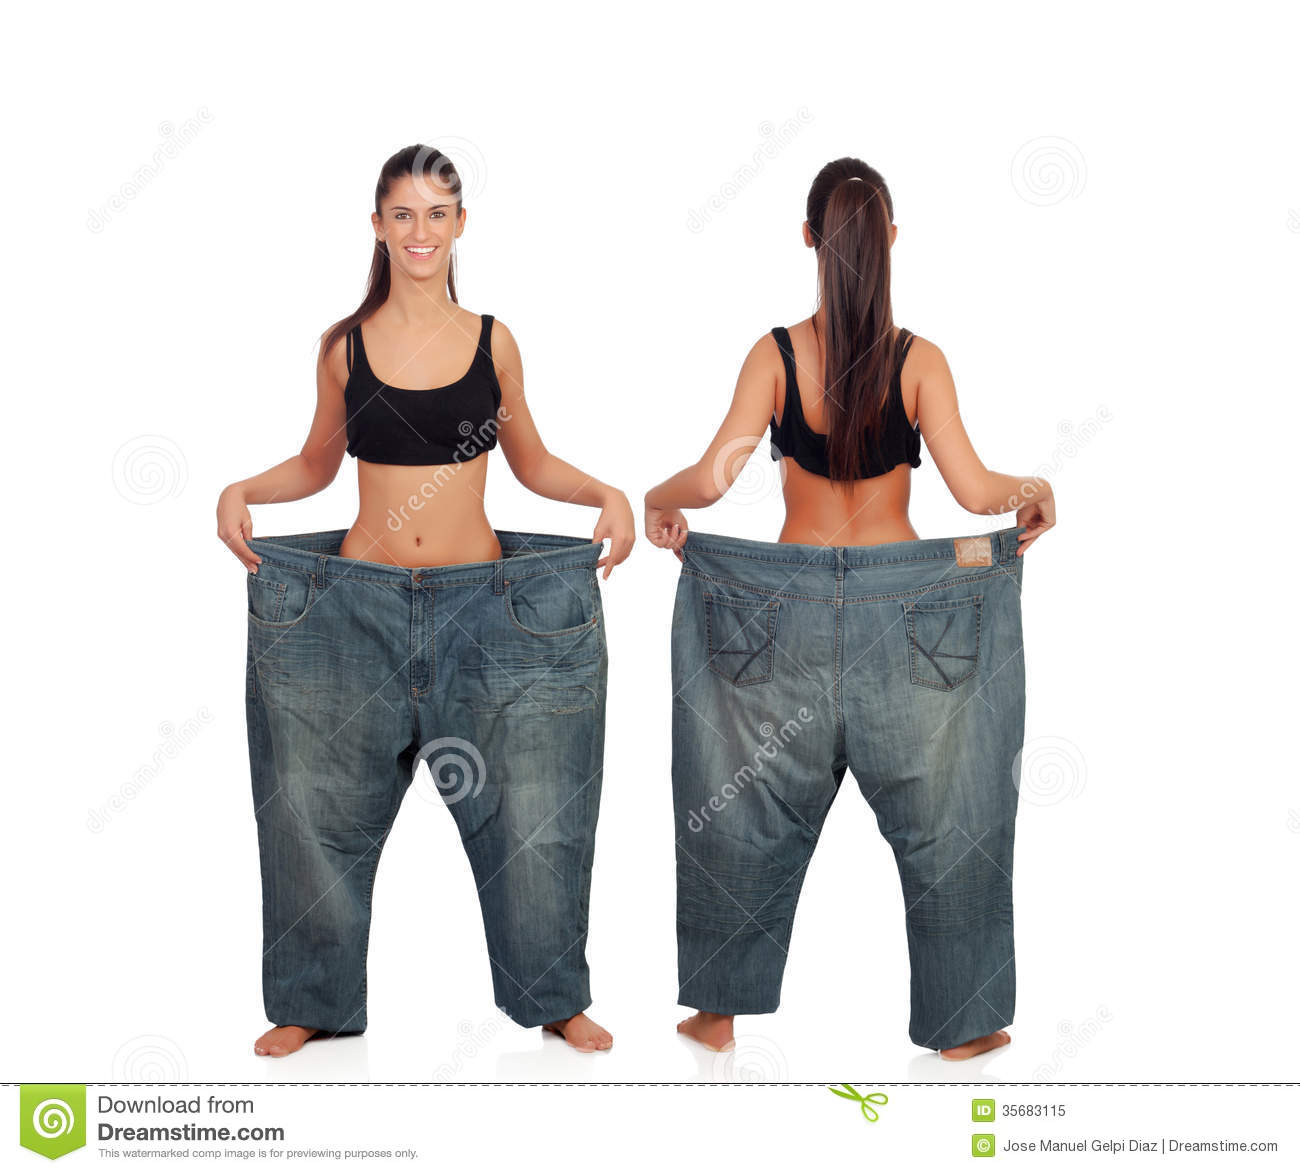 View ahead and behind thin girl with big pants isolated on a white ...: http://www.dreamstime.com/royalty-free-stock-photo-view-ahead-behind-thin-girl-big-pants-isolated-white-background-image35683115